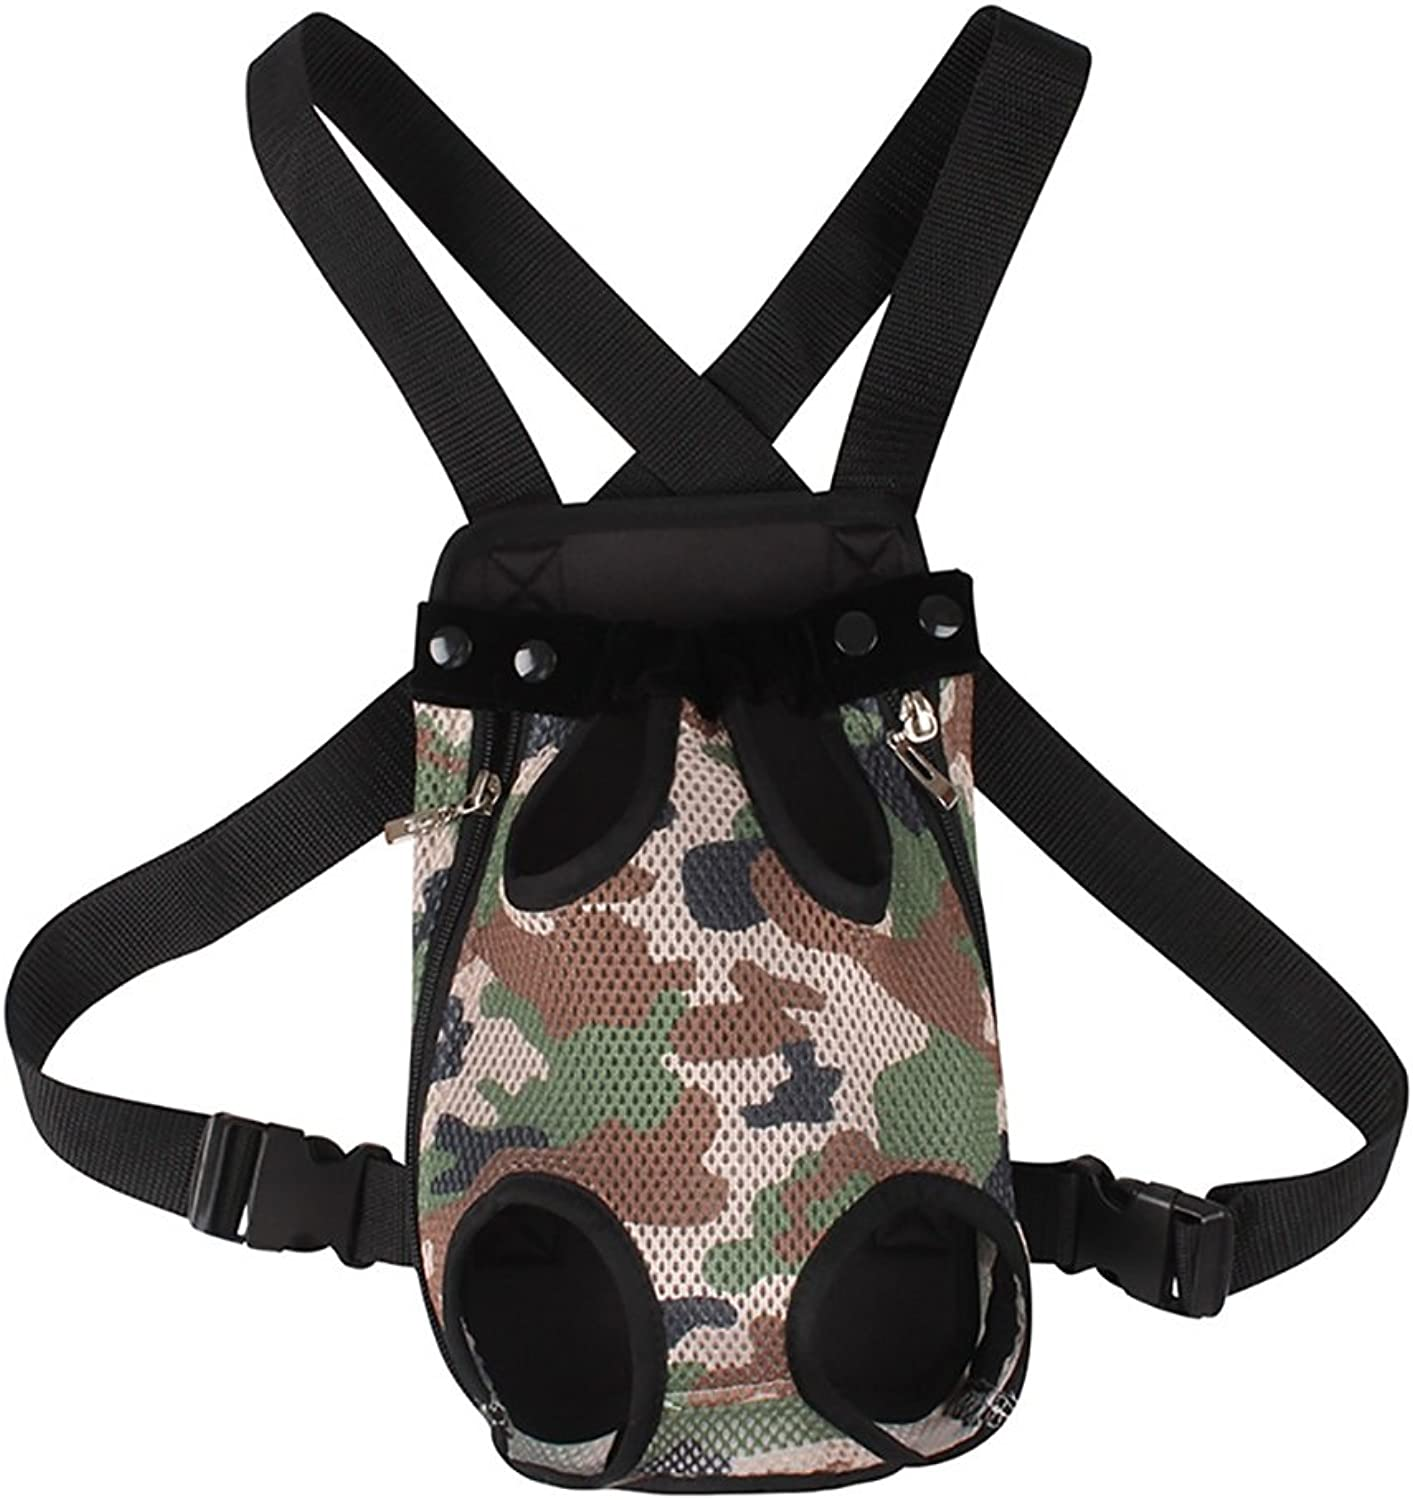 Pet Backpack,Pet Camouflage Mesh Chest Bag Out of Carrying Cat Dog Pet Bag Outpack Carrying Case Pet Supplies 4Size